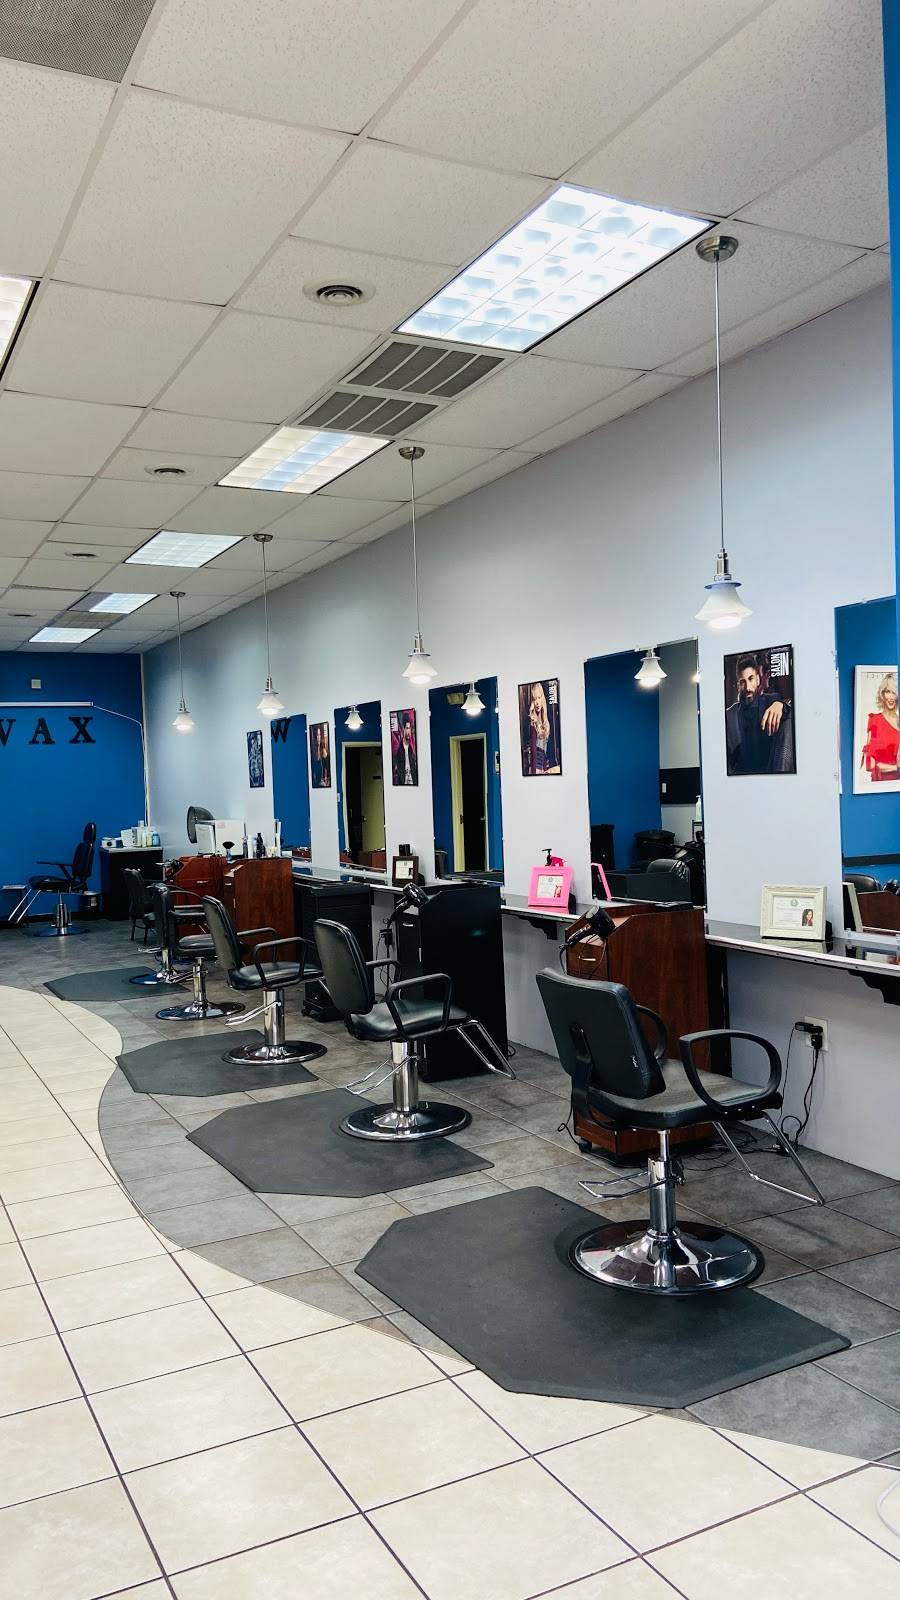 Today Clips - hair care  | Photo 9 of 9 | Address: 8546 S Hulen St, Fort Worth, TX 76123, USA | Phone: (817) 294-4292